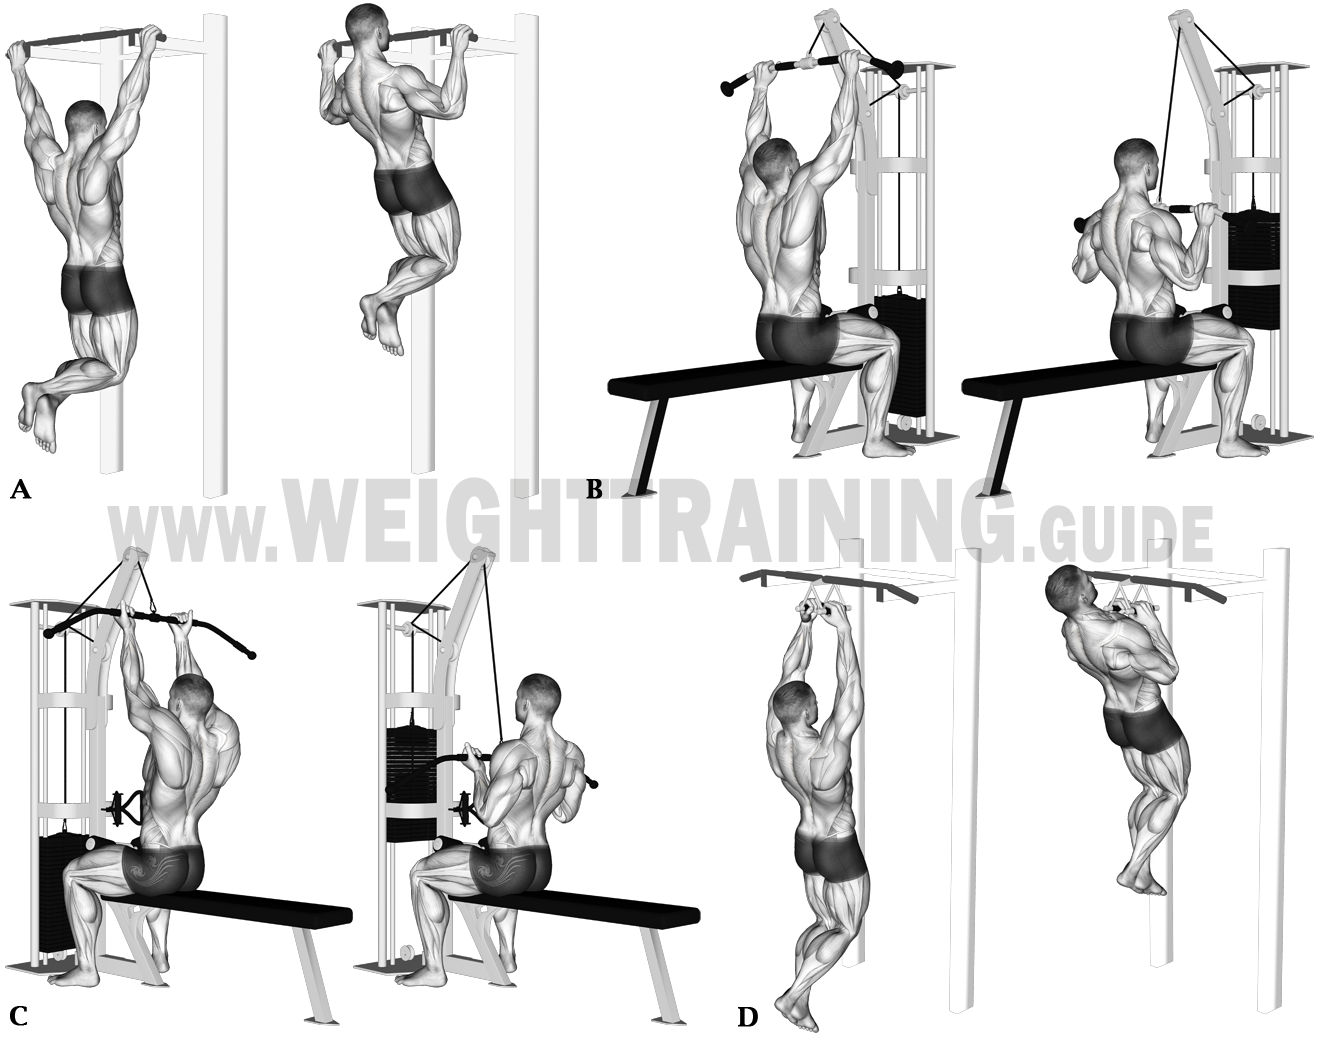 Vertical pulling exercises